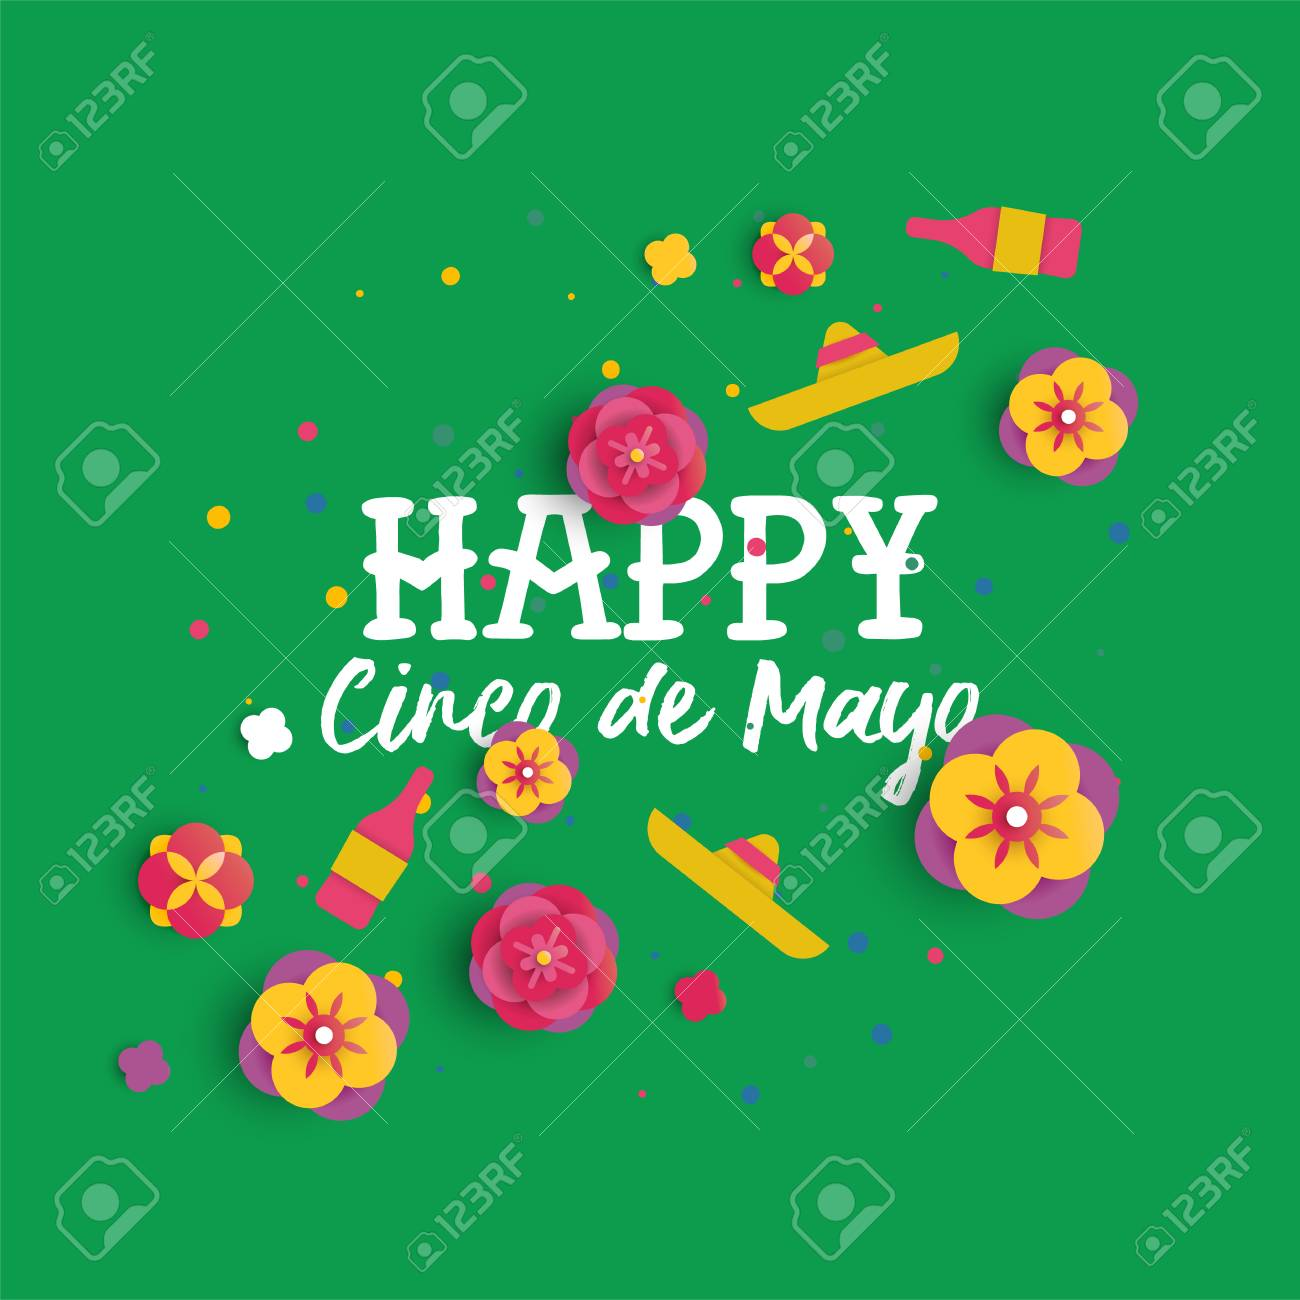 Happy cinco de mayo greeting card in 3d paper art style for holiday happy cinco de mayo greeting card in 3d paper art style for holiday event colorful m4hsunfo